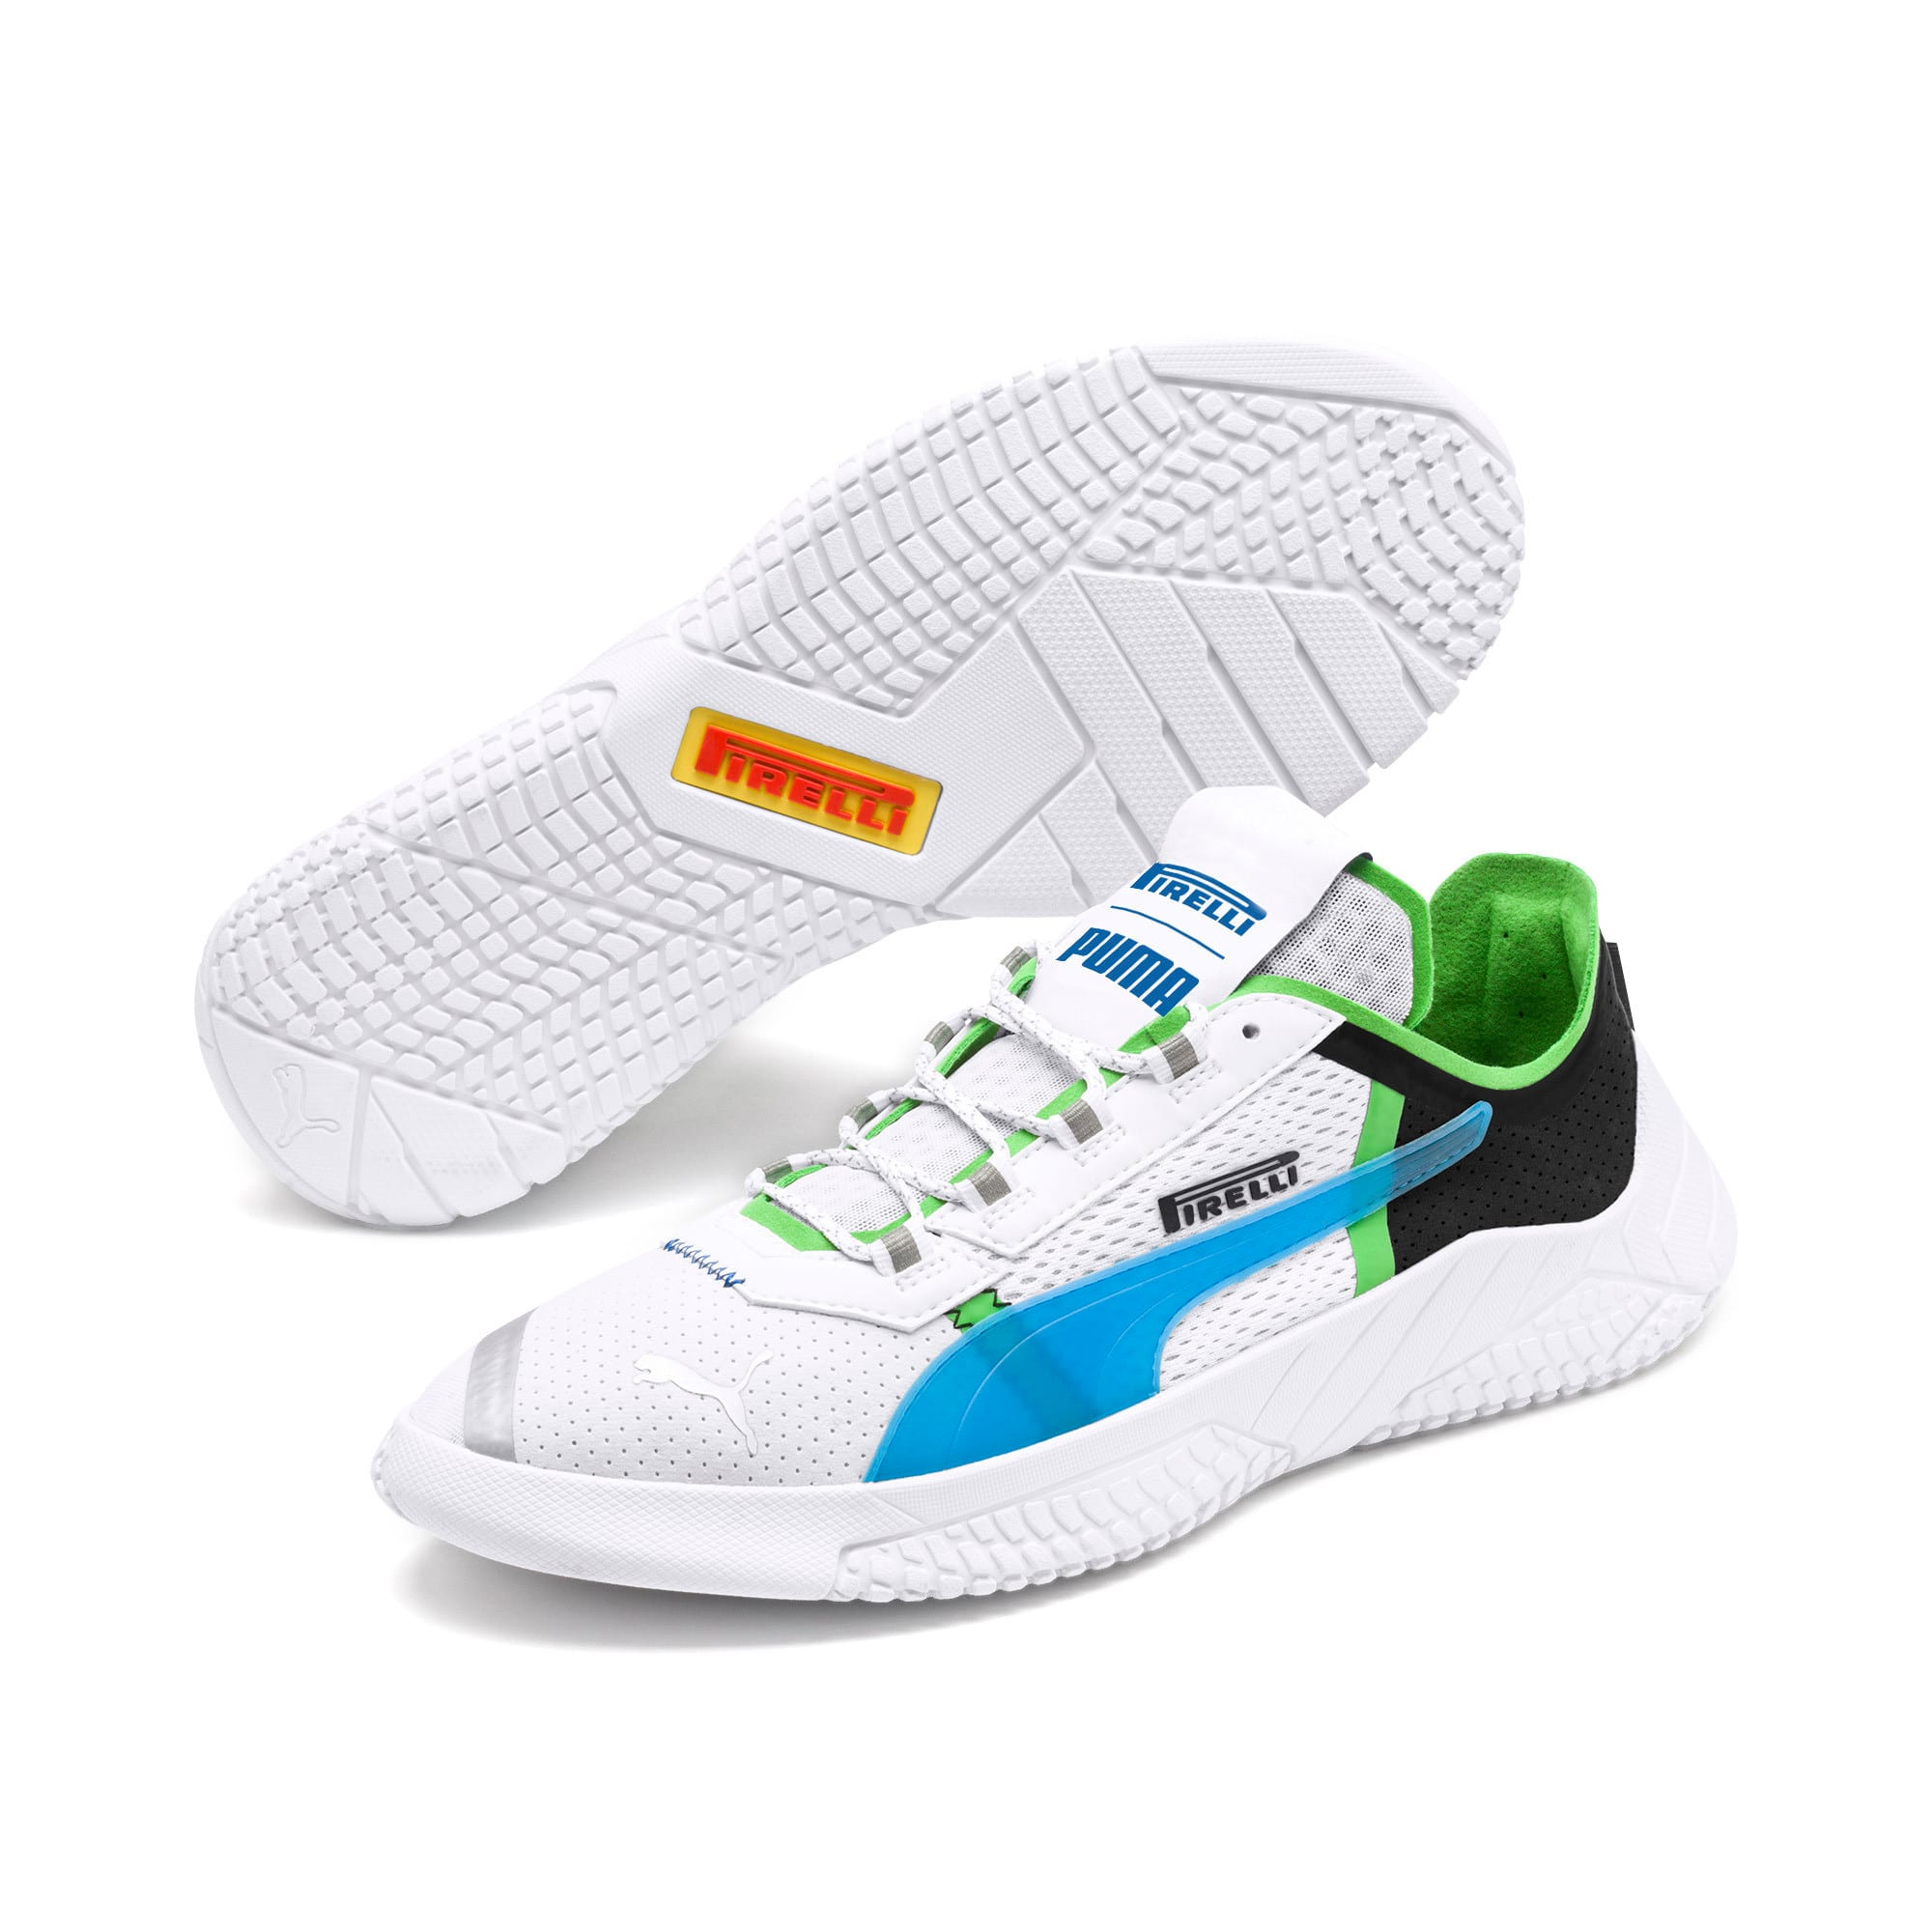 Thumbnail 3 of Pirelli Replicat-X Trainers, White-Black-Classic Green, medium